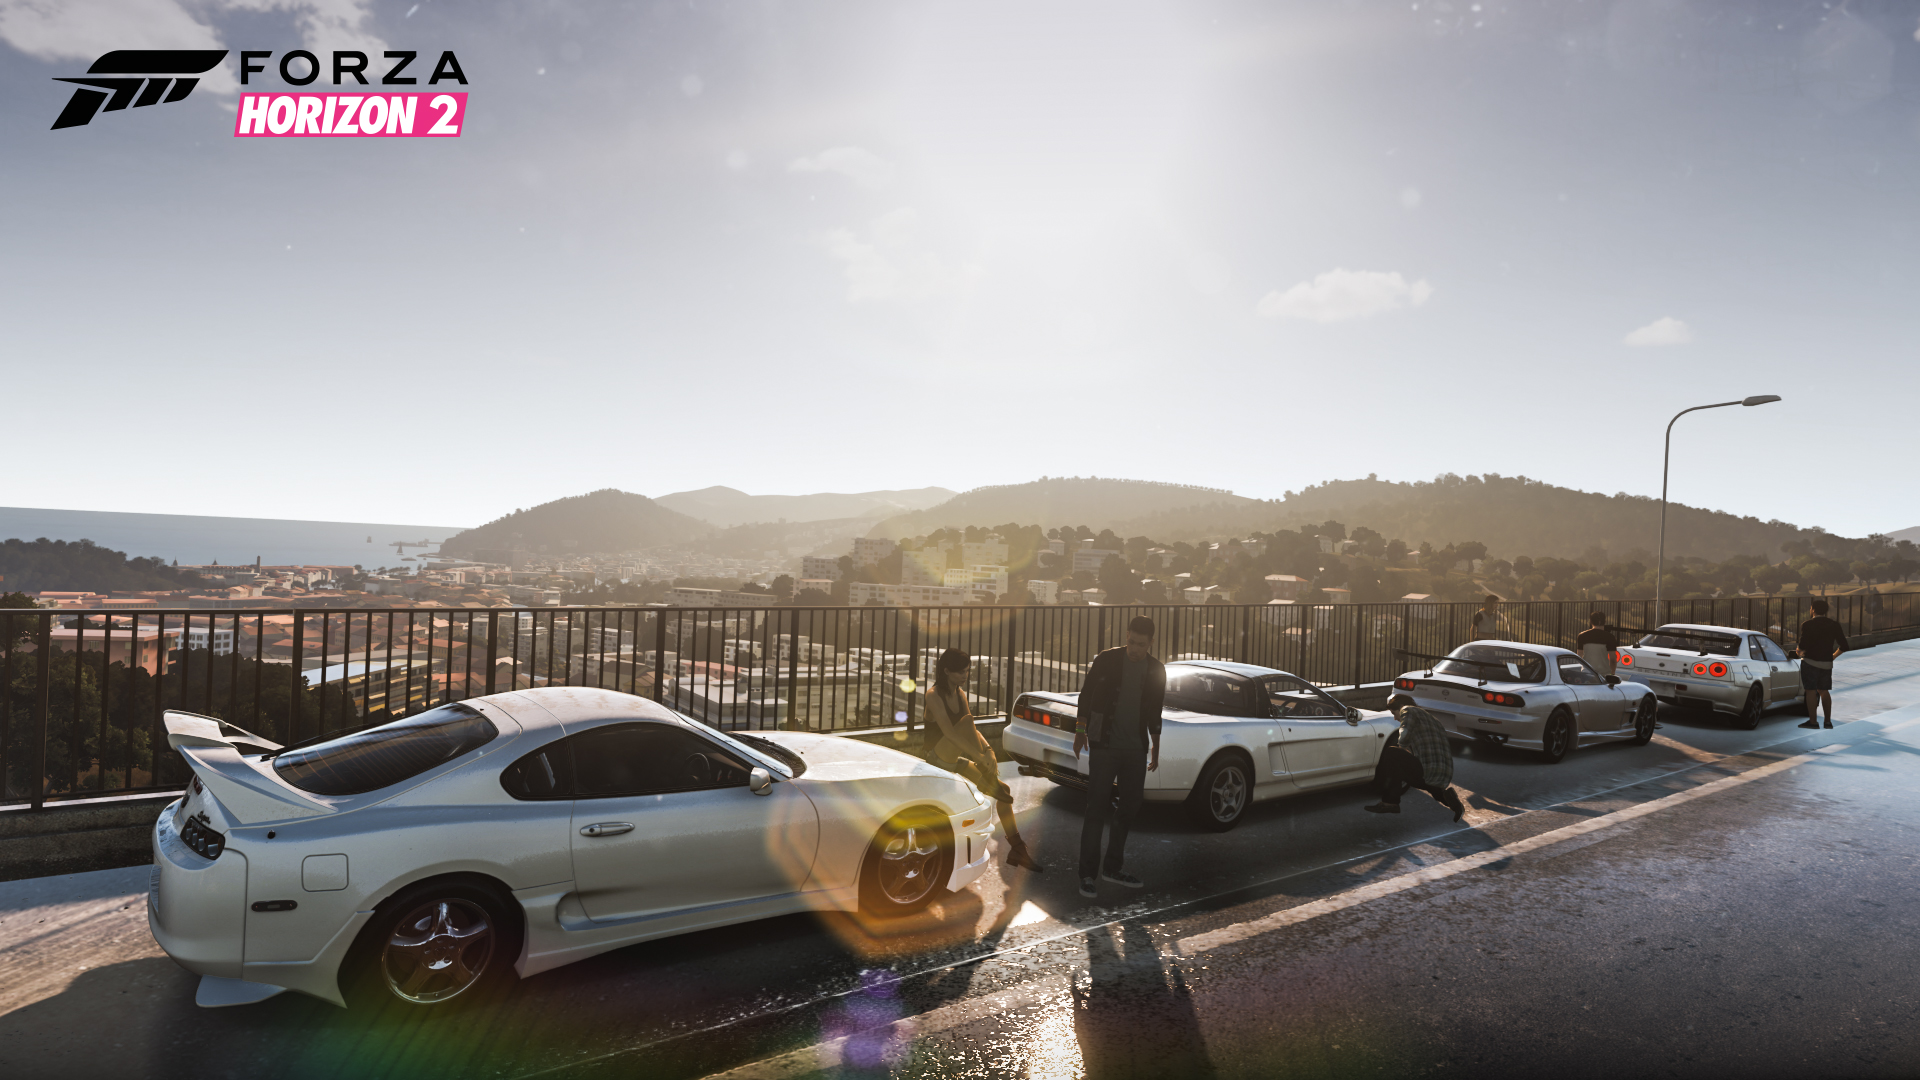 I Ve Made A Car Throttle Car Club On Horizon 2 Feel Free To Join